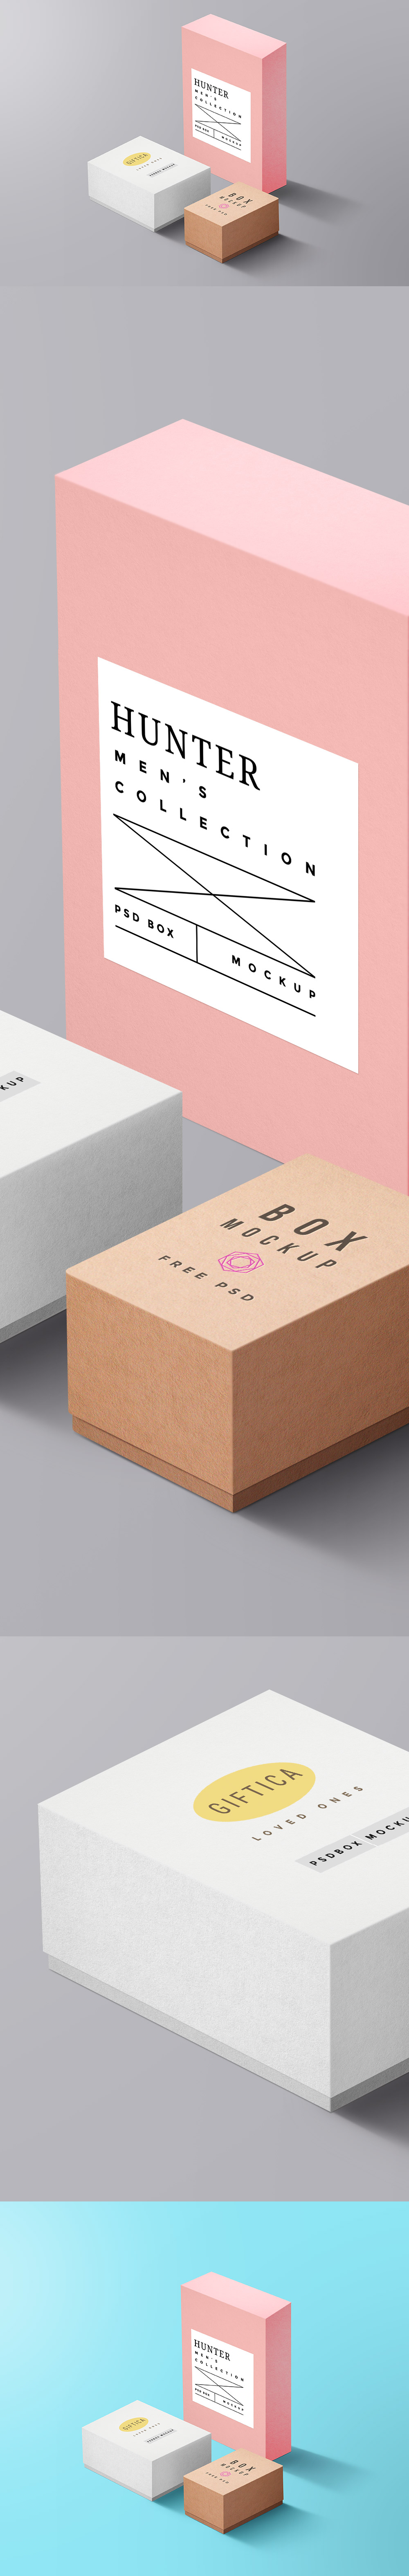 Packaging Boxes Free PSD MockUp